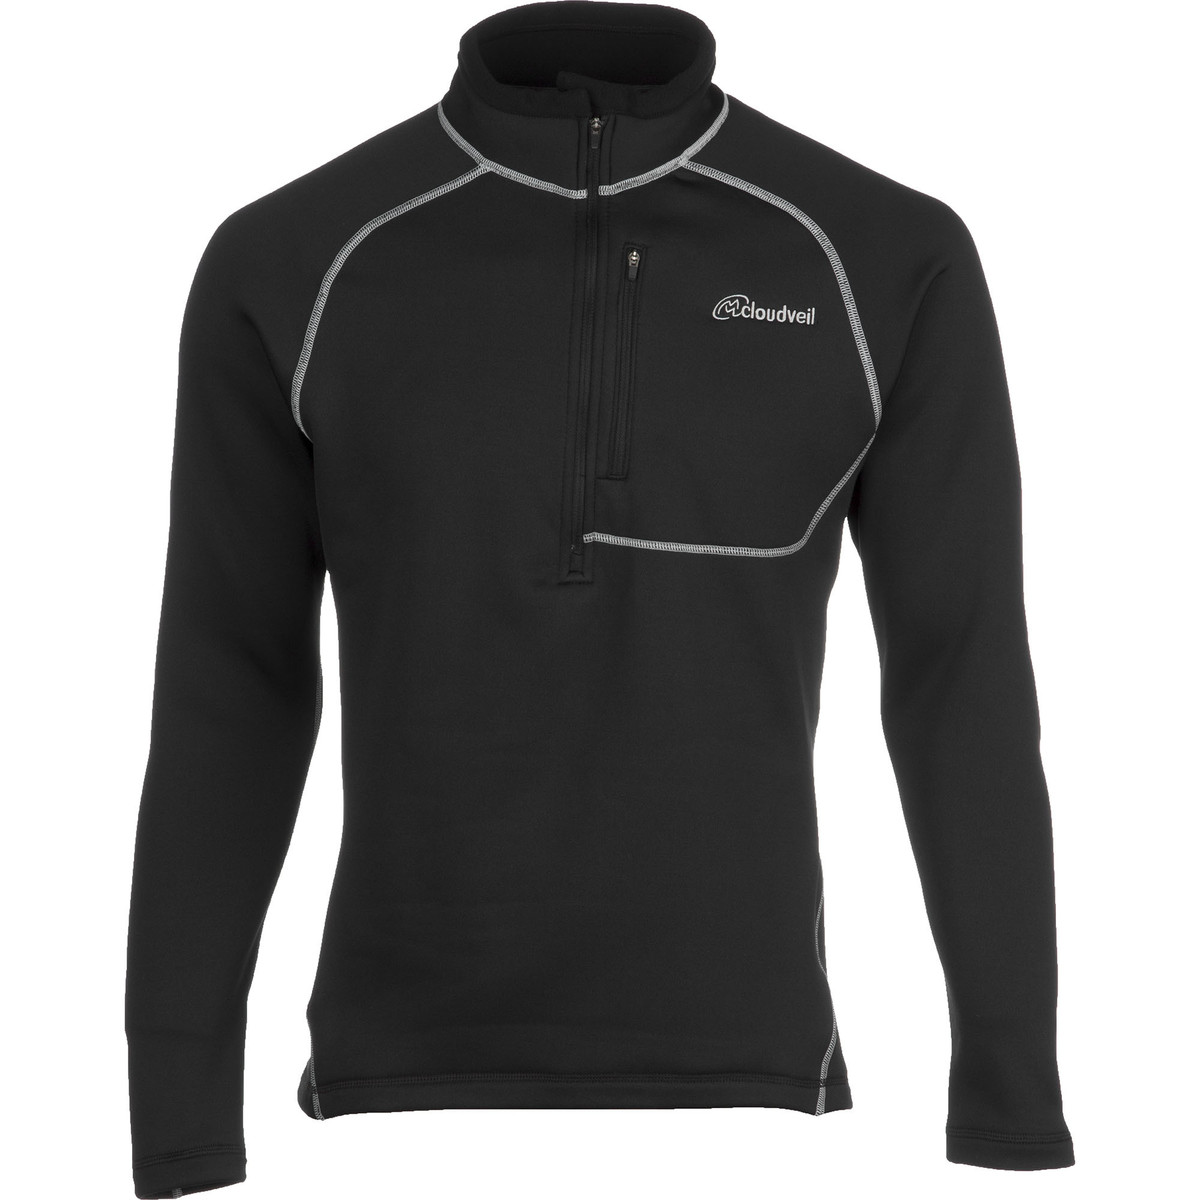 Cloudveil Run Don't Walk 1/4 Zip Pullover